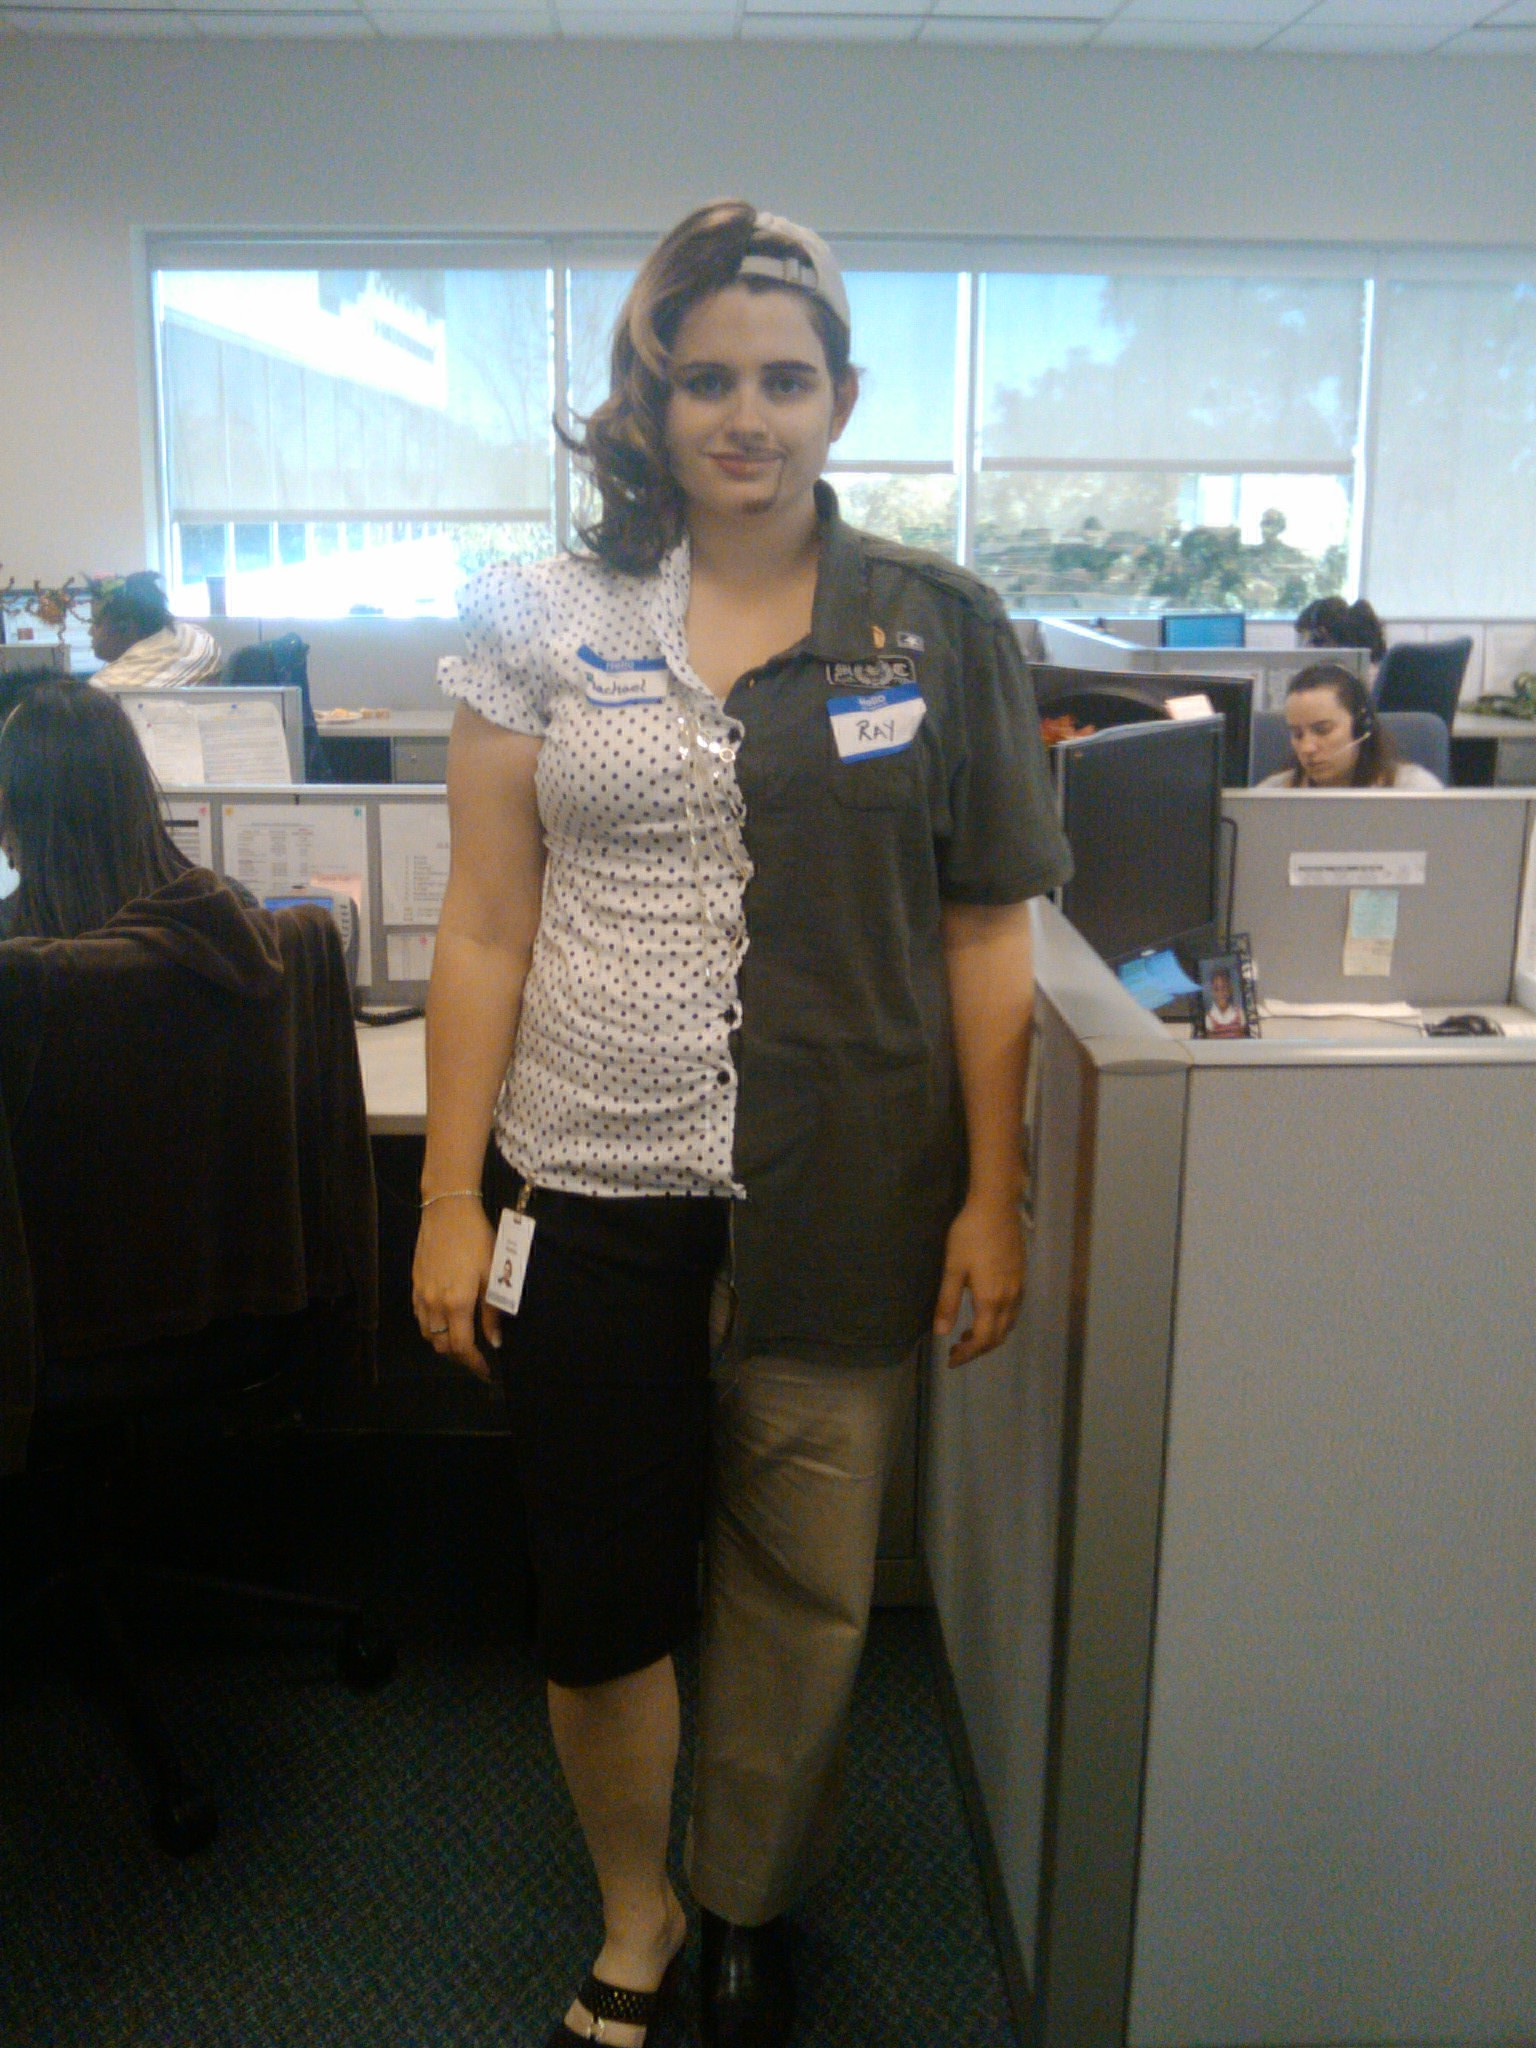 Halloween Costumes For Nurses At Work